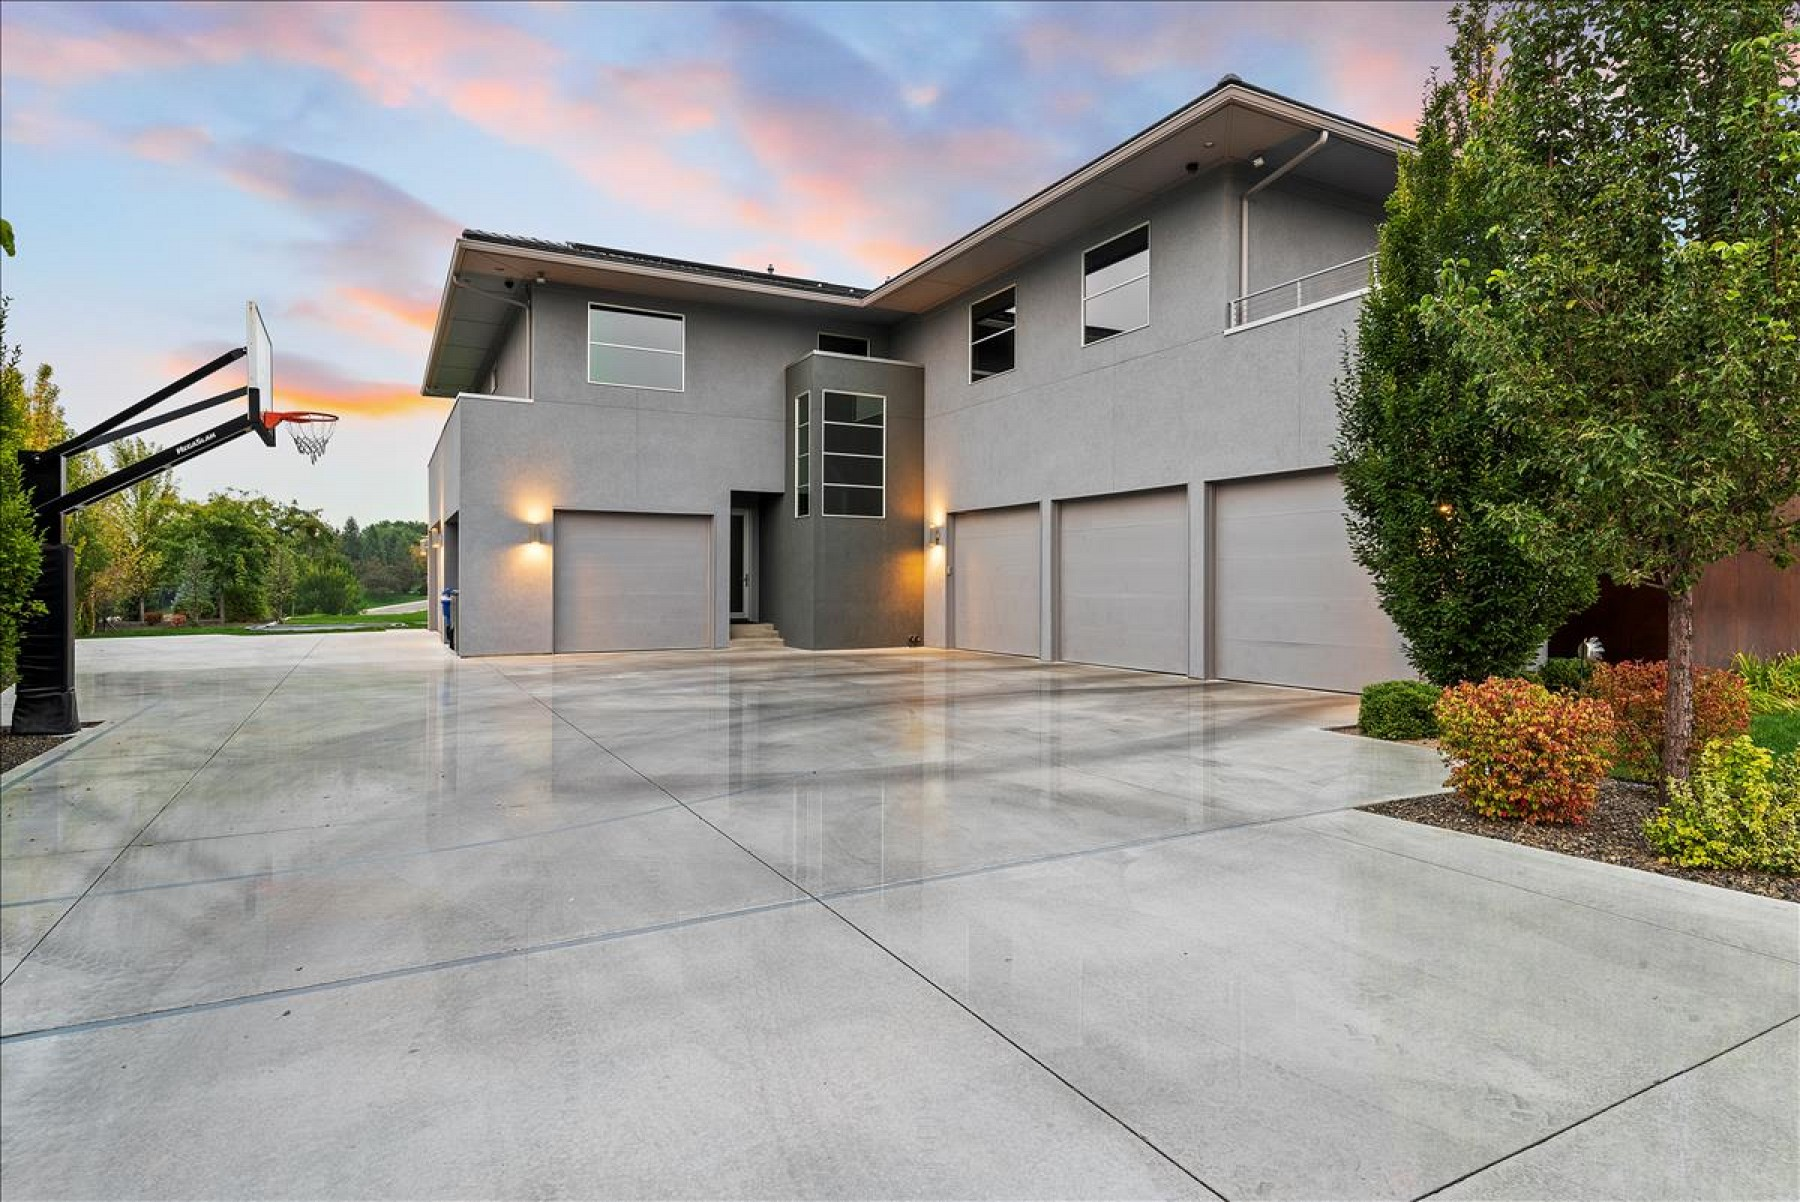 6992 N Spurwing Way, Meridian, ID 83646